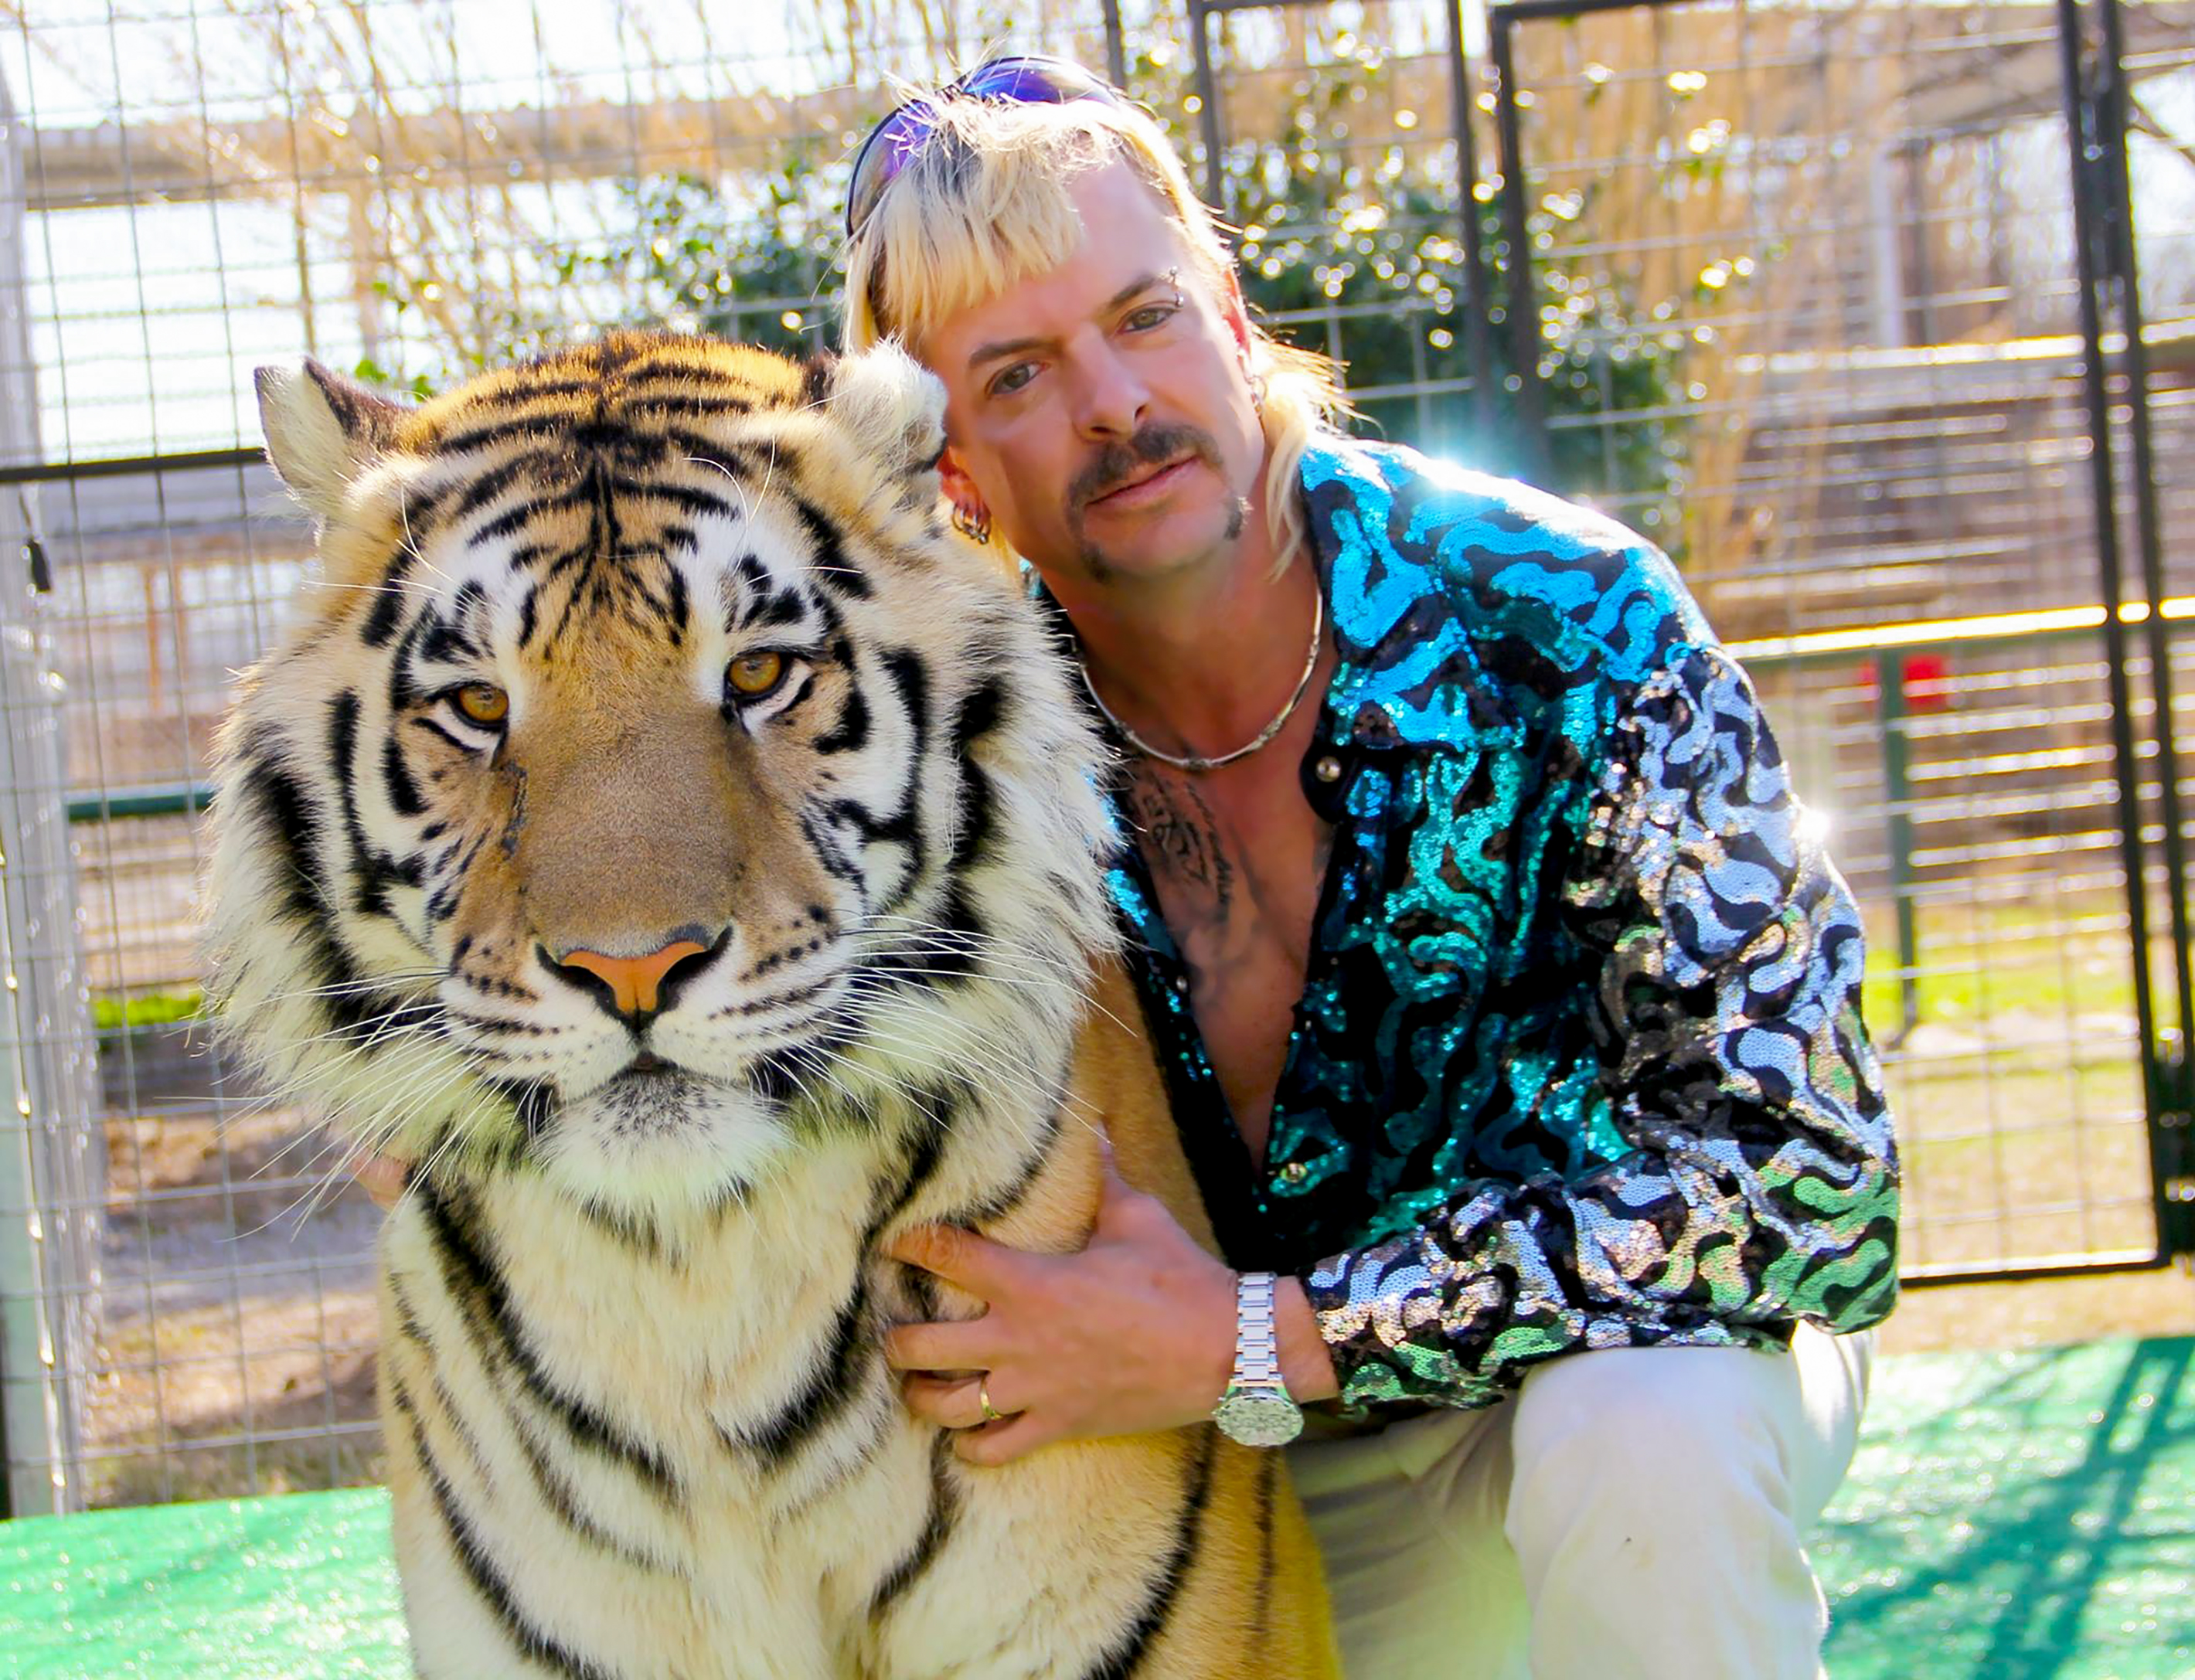 Joe Exotic poses with a tiger in 'Tiger King'